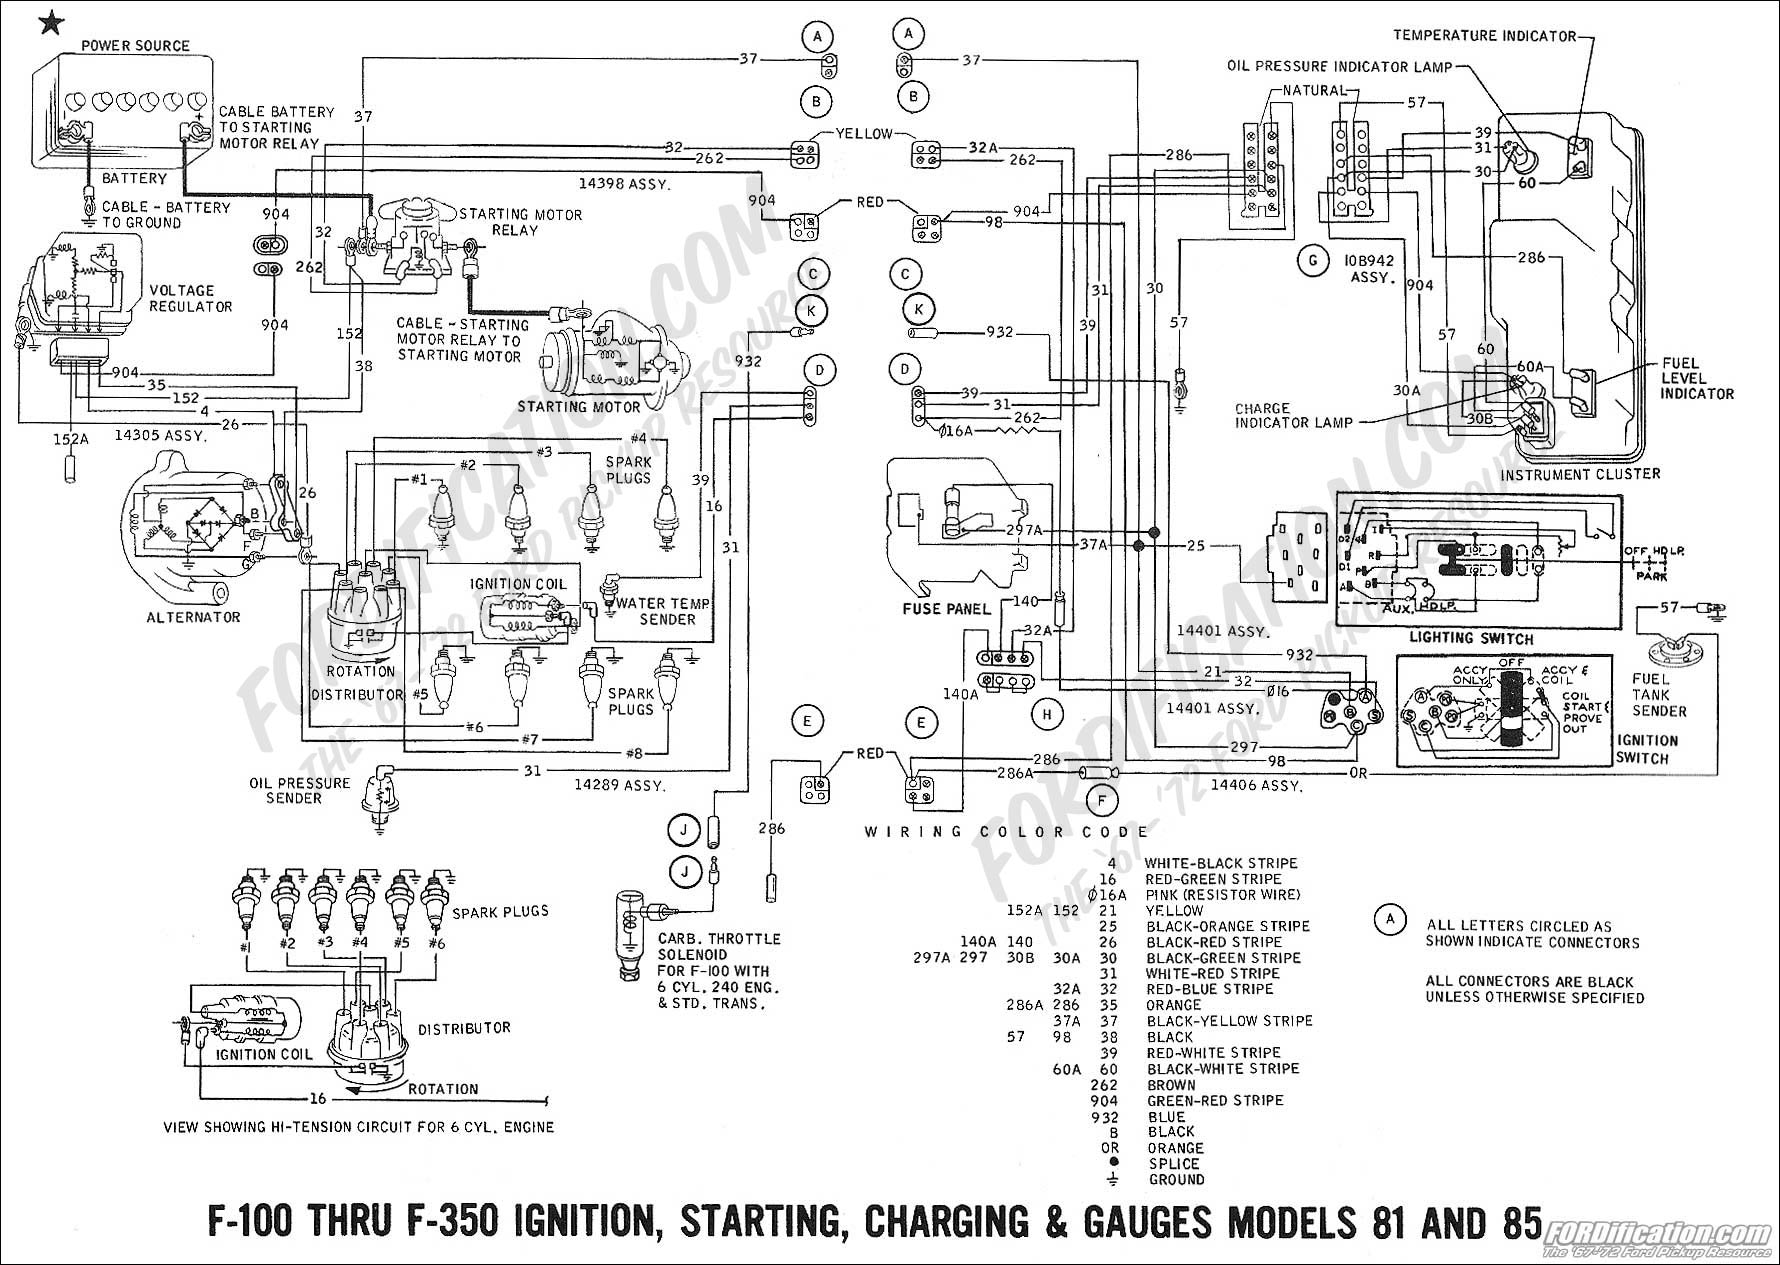 2014 Ford F 250 Dash Wiring Schematic Opinions About Wiring Diagram \u2022  2014 Ford Edge Wiring Diagram 2014 Ford F250 Wiring Diagram